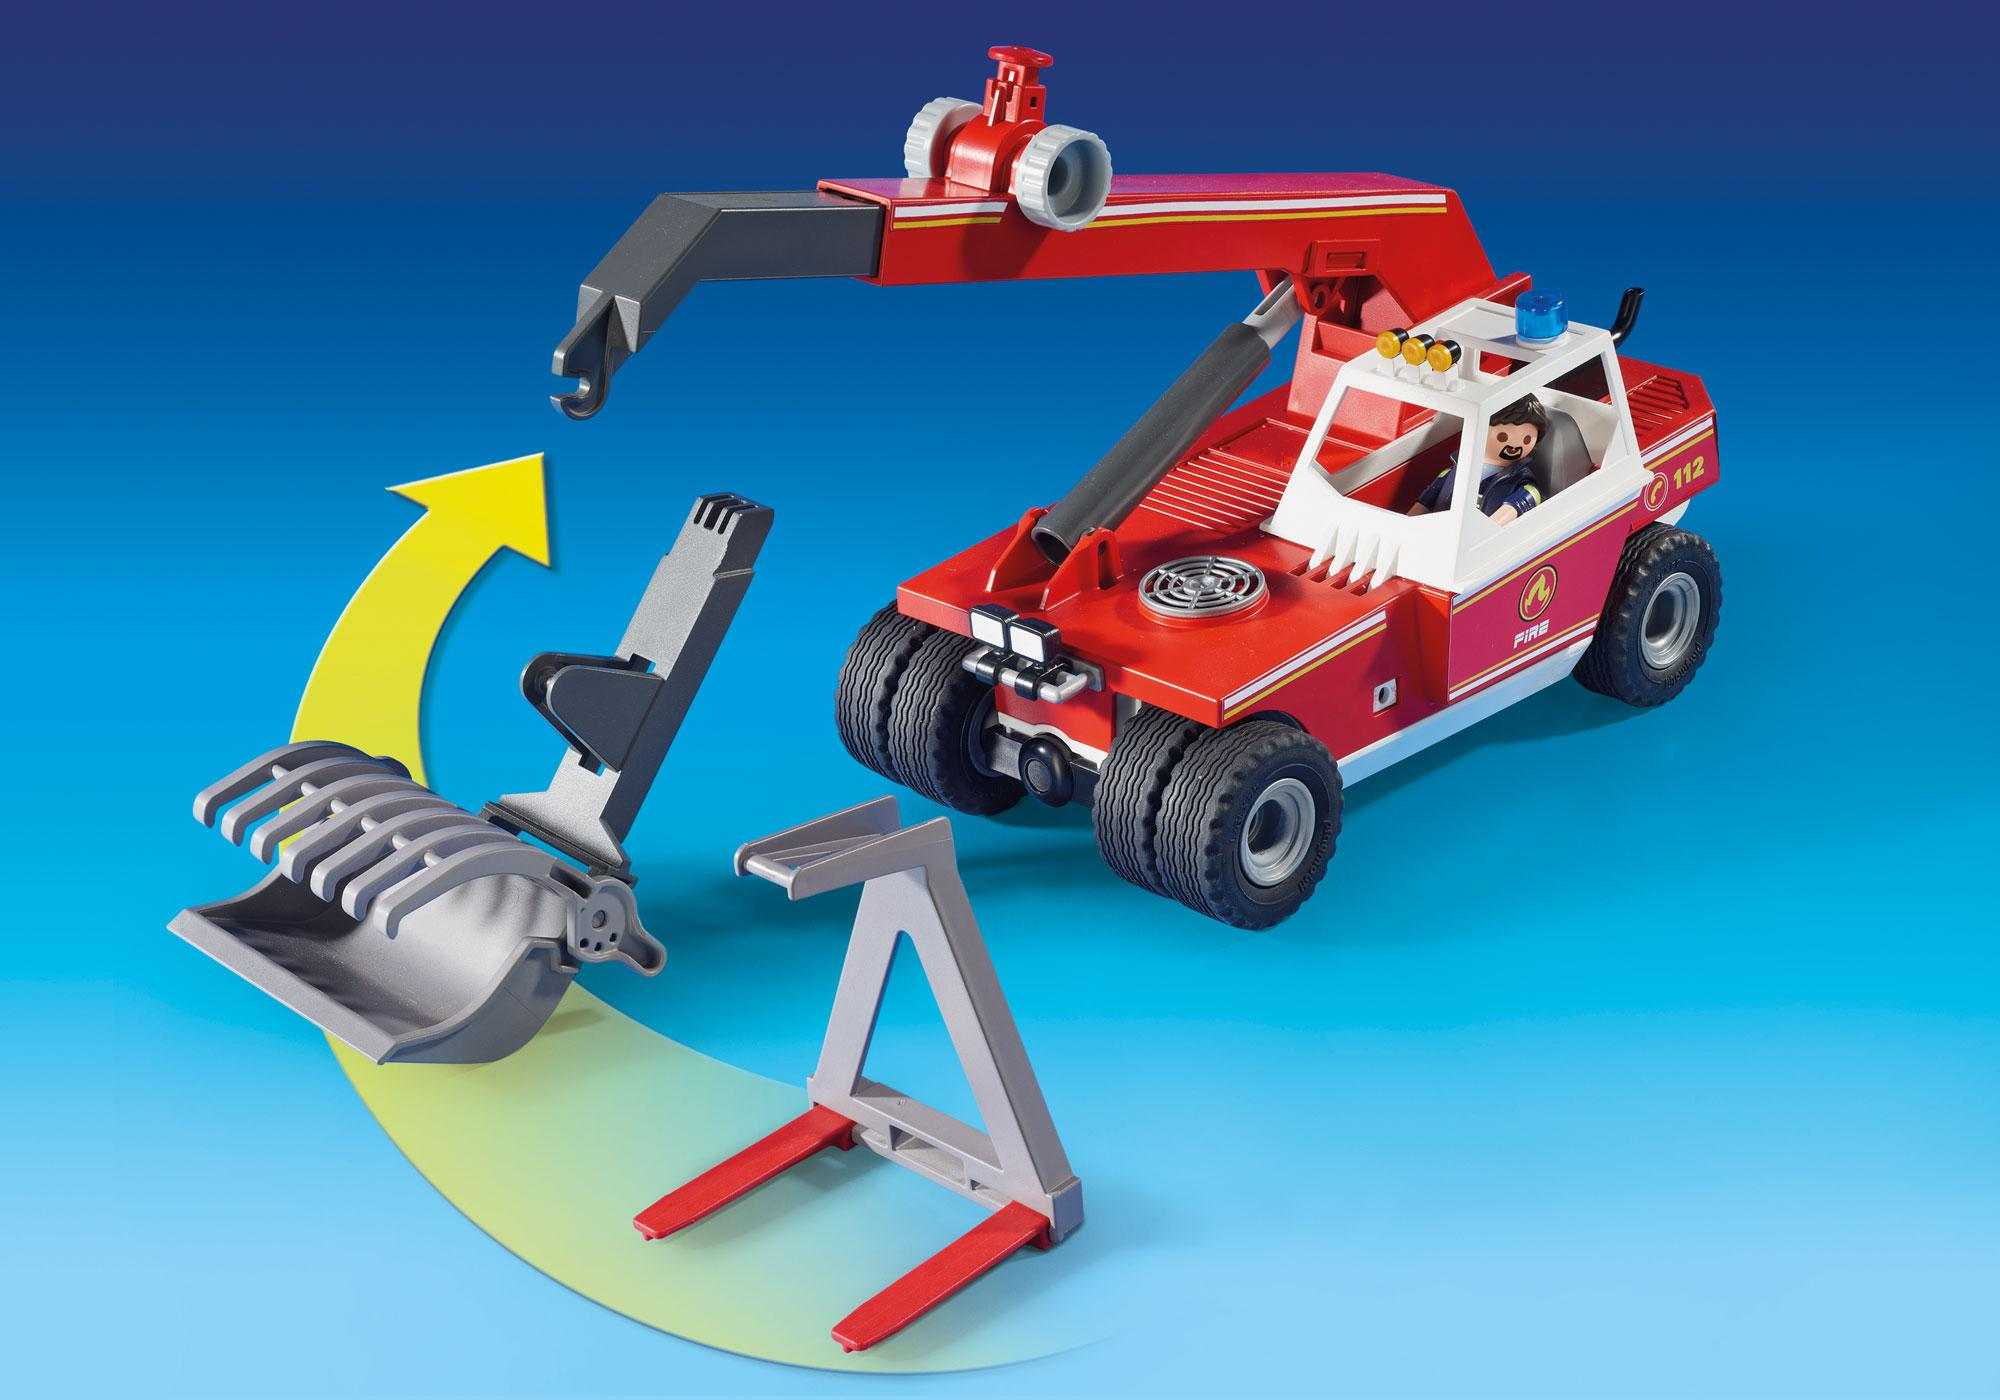 http://media.playmobil.com/i/playmobil/9465_product_extra1/Feuerwehr-Teleskoplader